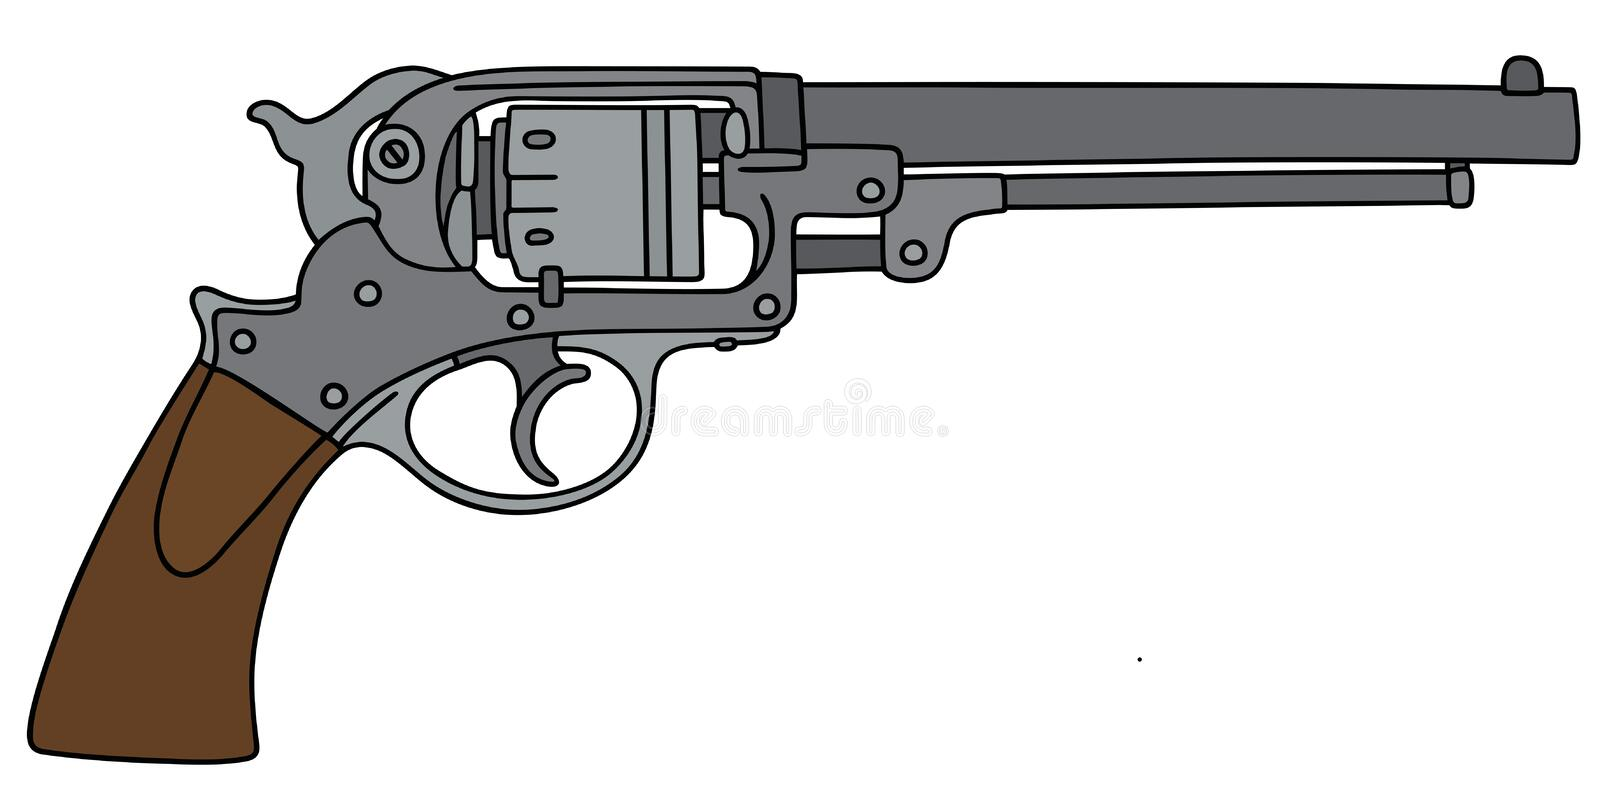 Classic revolver. Hand drawing of a classic revolver royalty free illustration